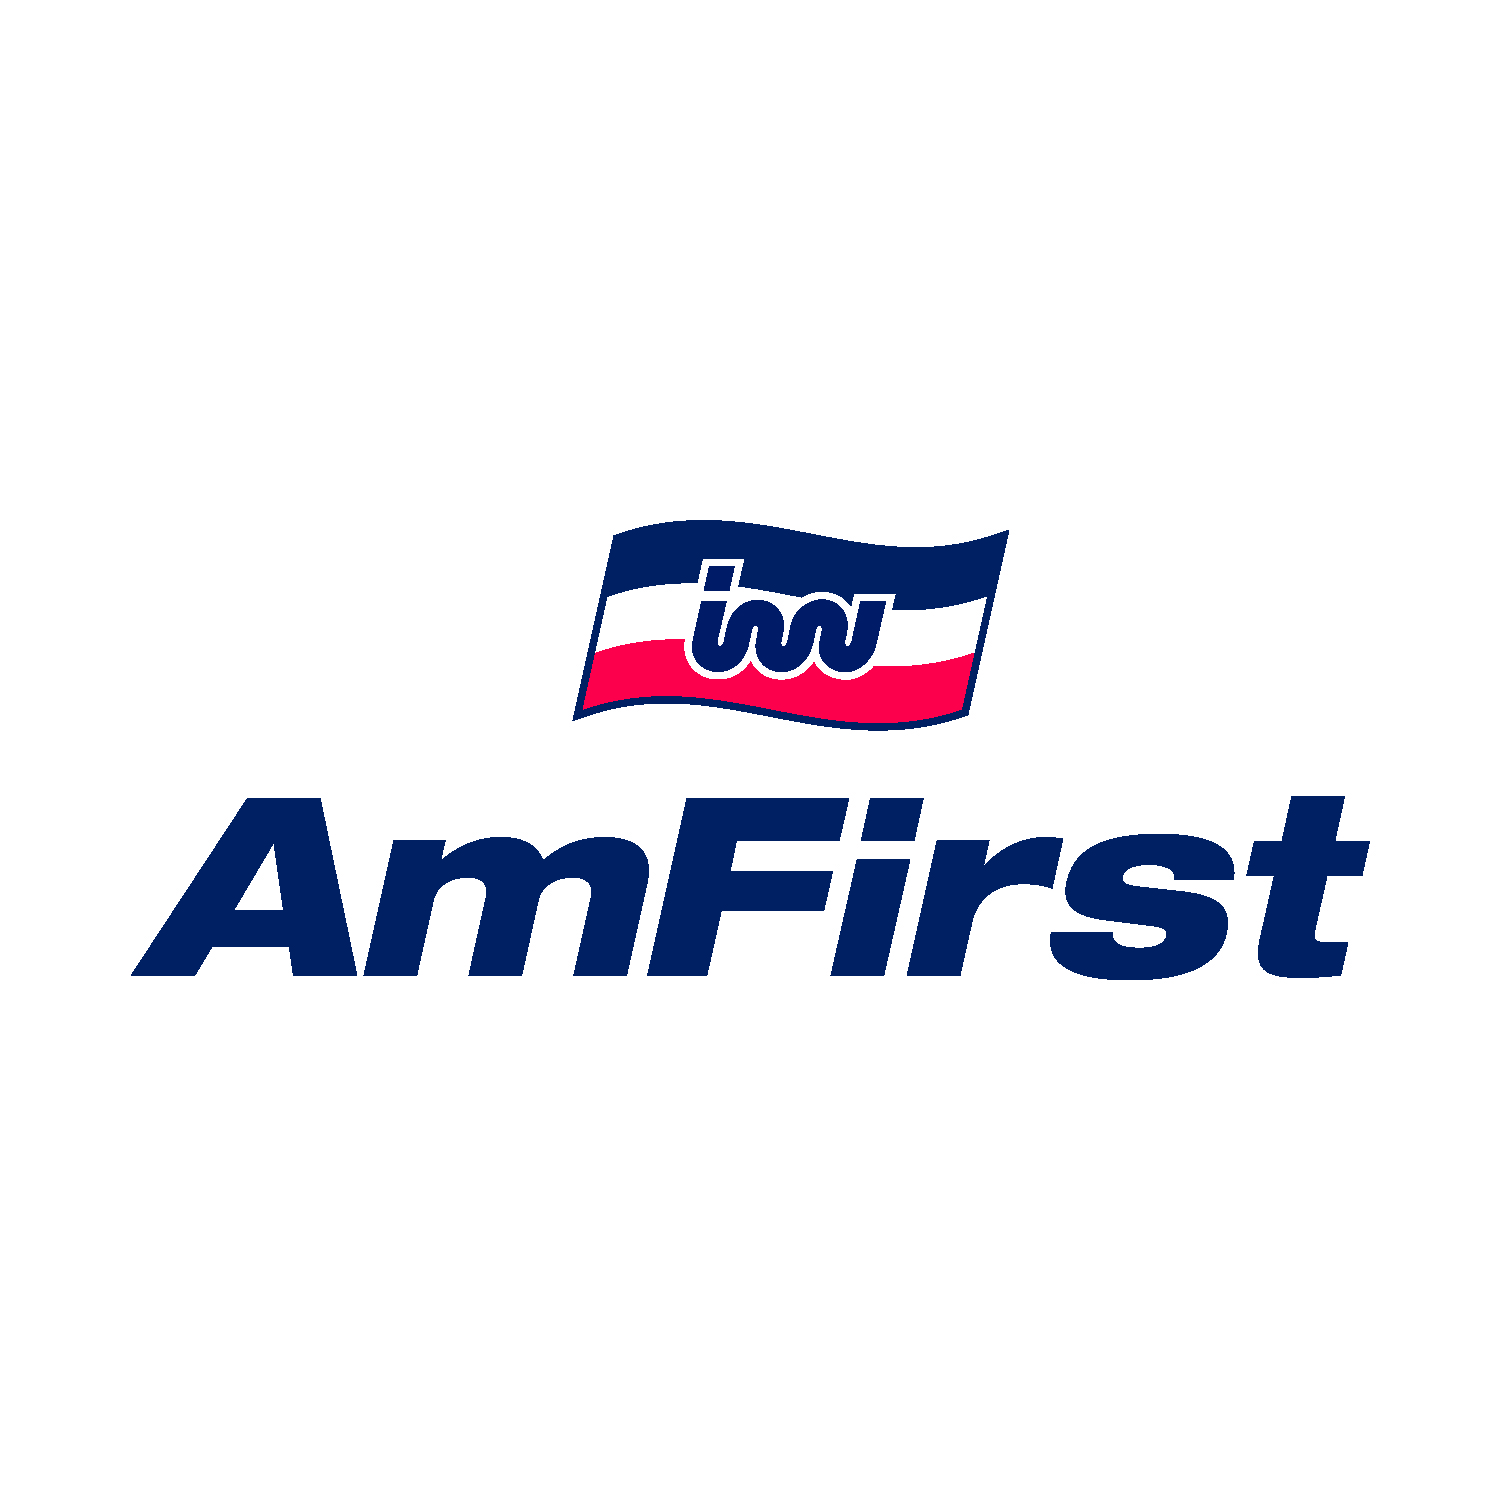 AMFIRST-logo-PMS_primary-stacked-full-color-navy-text